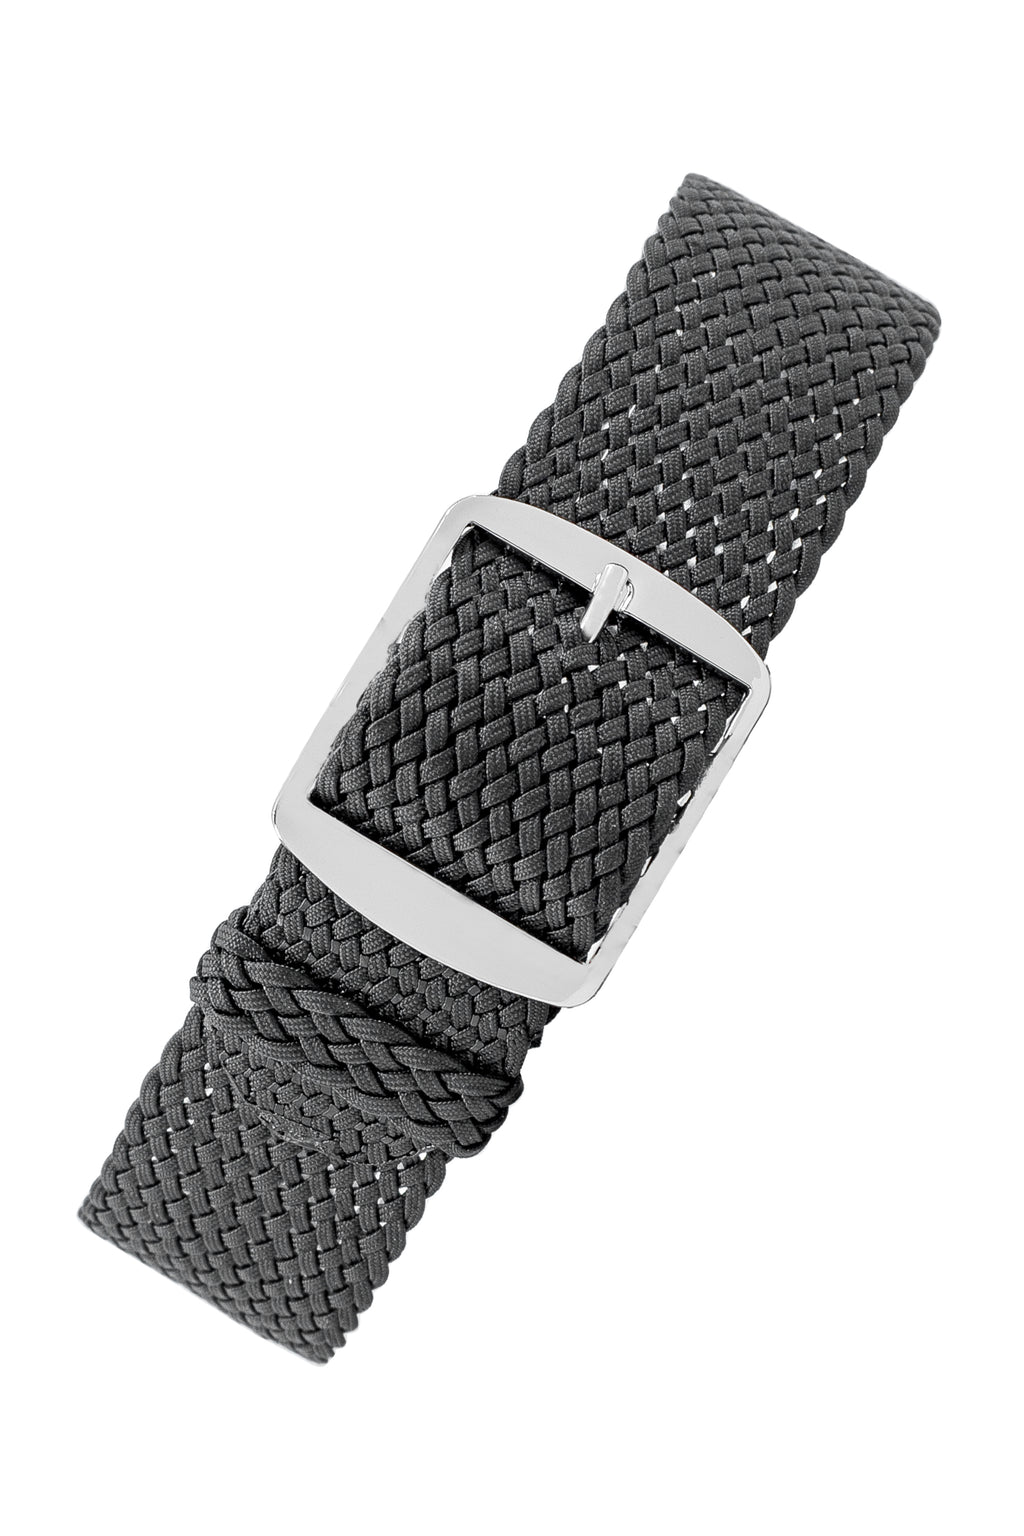 Perlon Braided One Piece Watch Strap & Buckle in DARK GREY